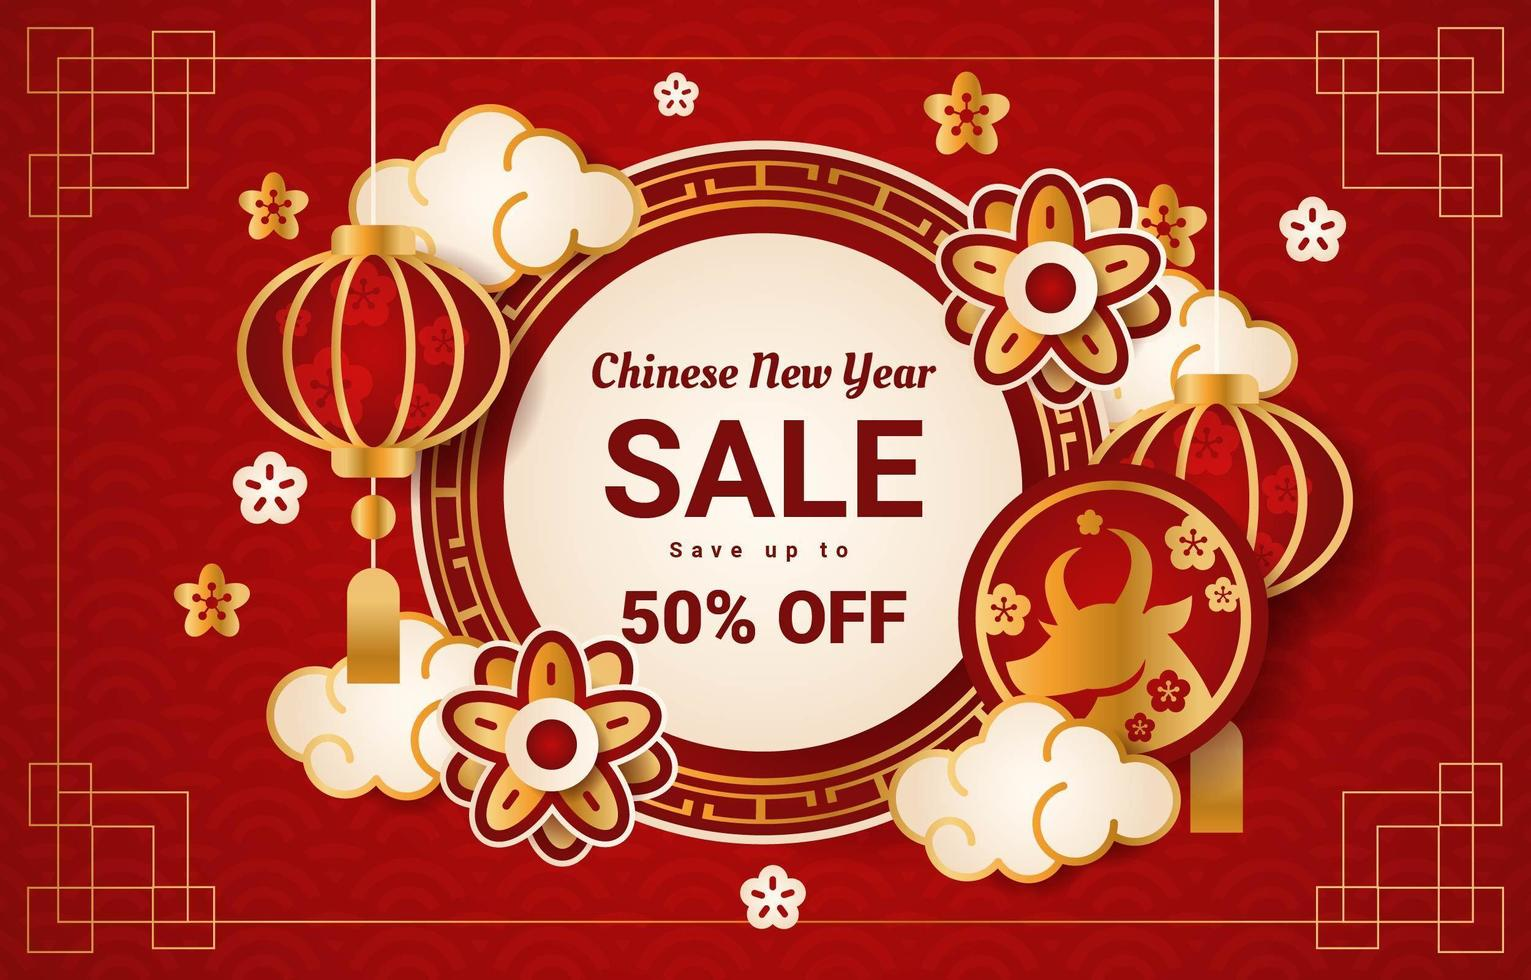 Chinese New Year Sale vector